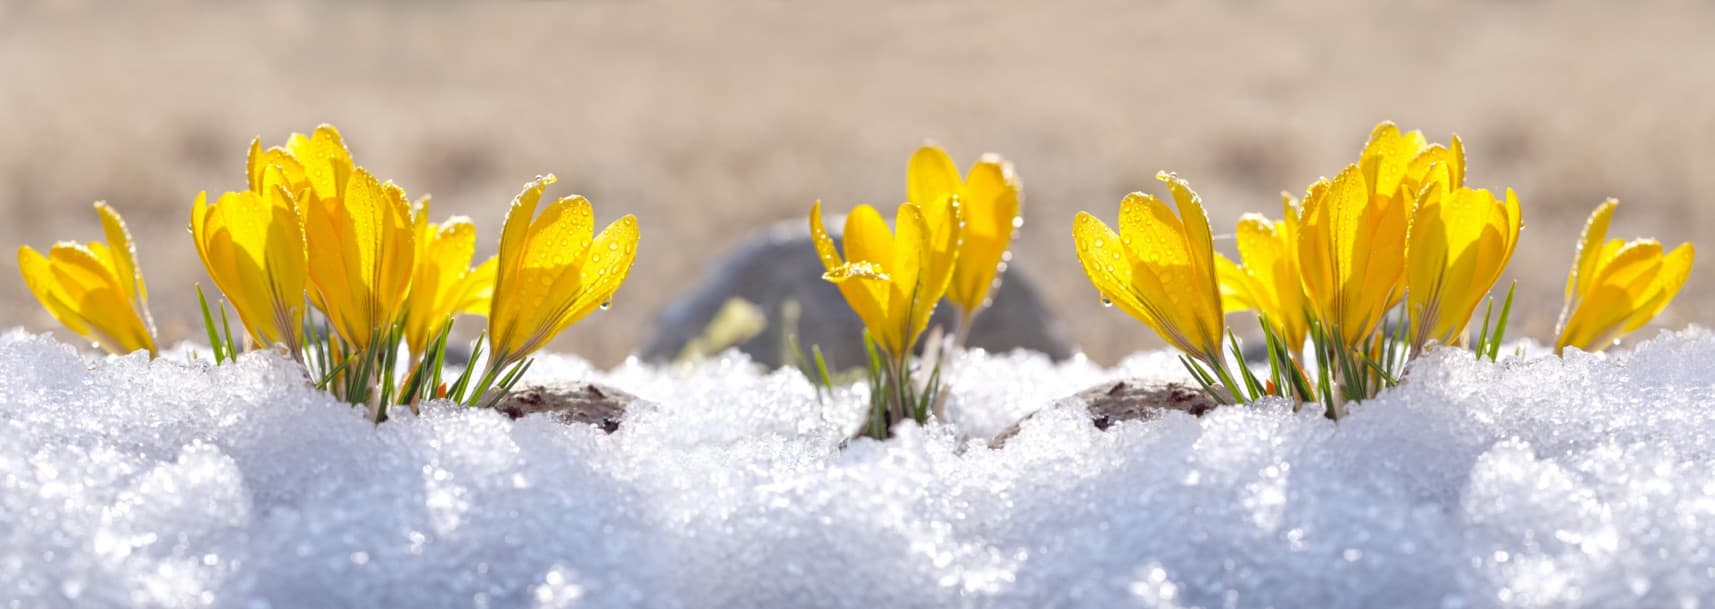 crocus plants covered in snow during winter